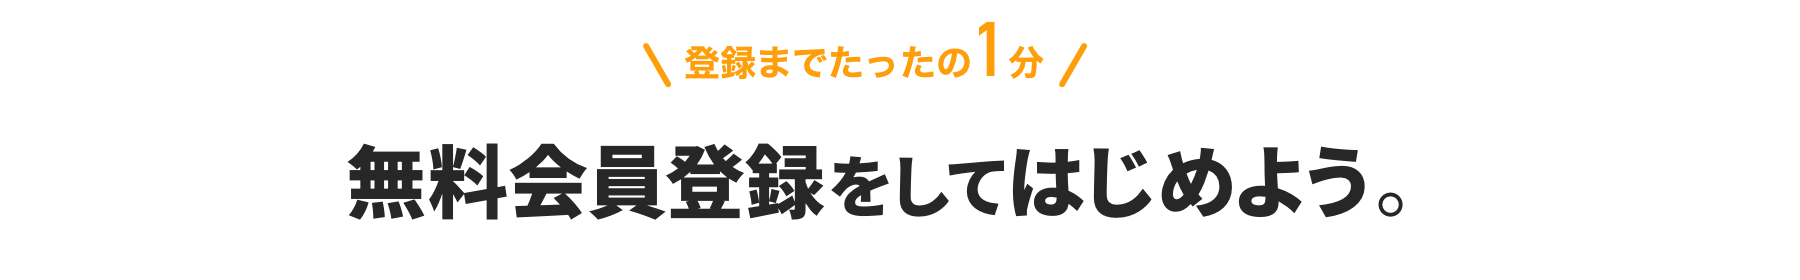 登録までたったの1分 無料会員登録をしてはじめよう